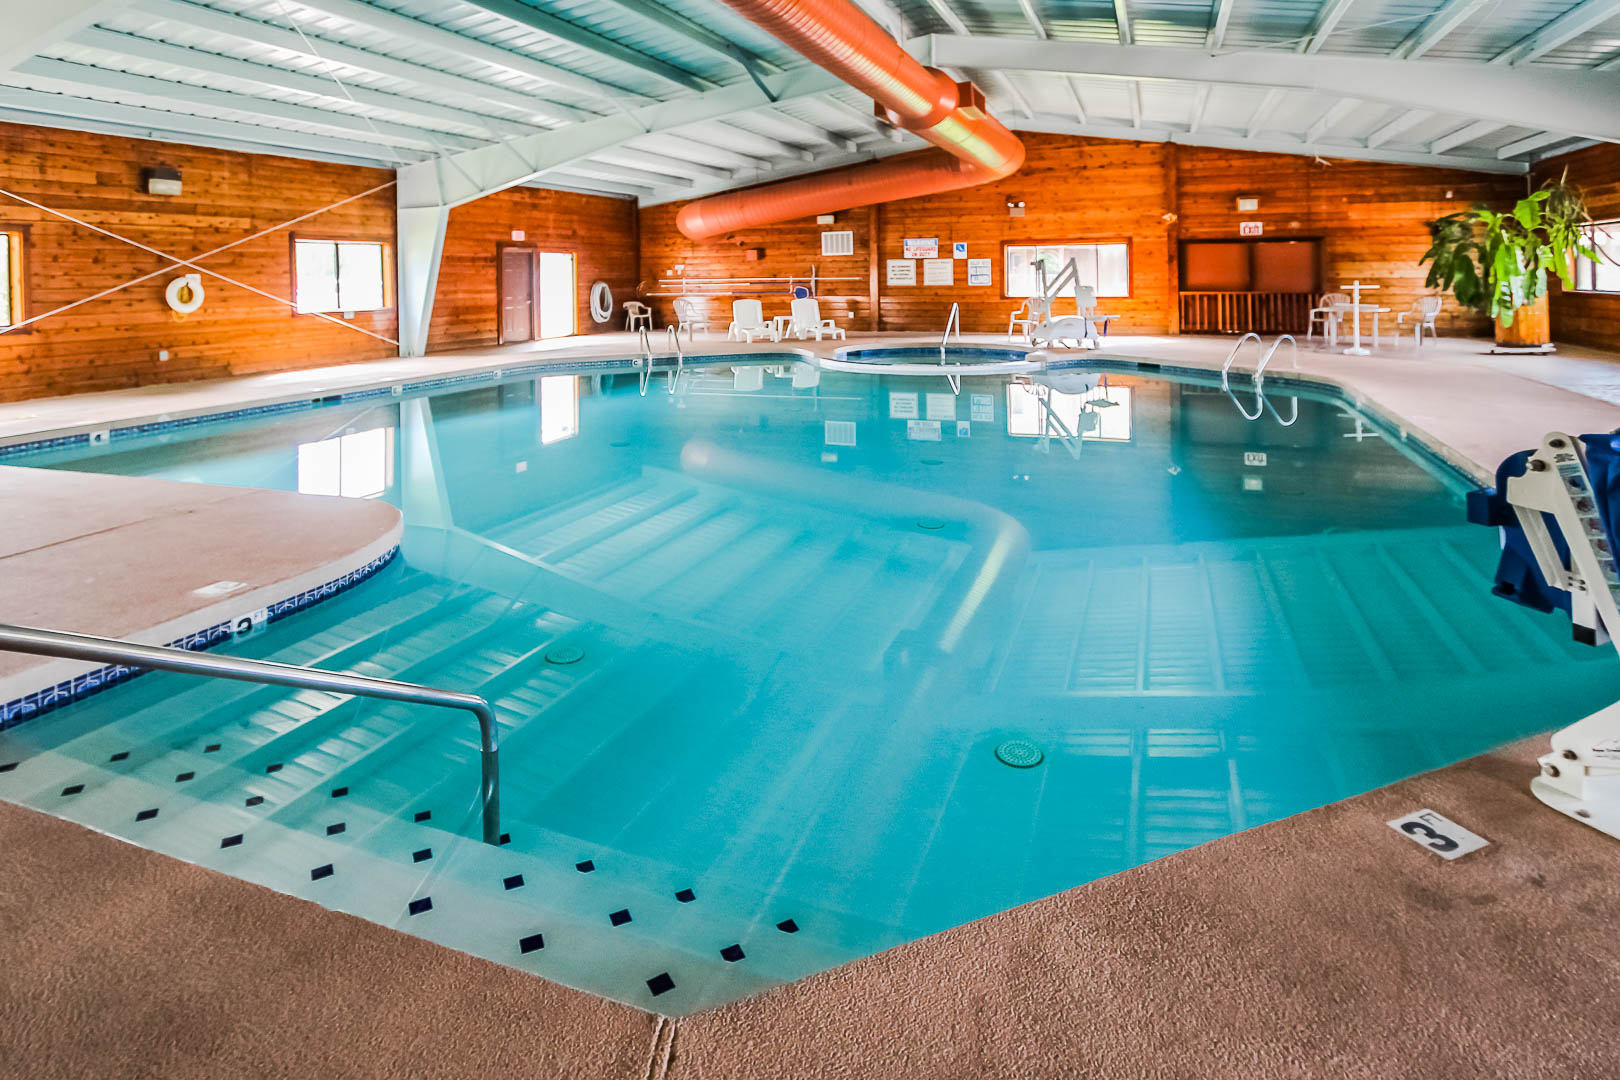 A clean indoor swimming pool at VRI's Roundhouse Resort in Pinetop, Arizona.